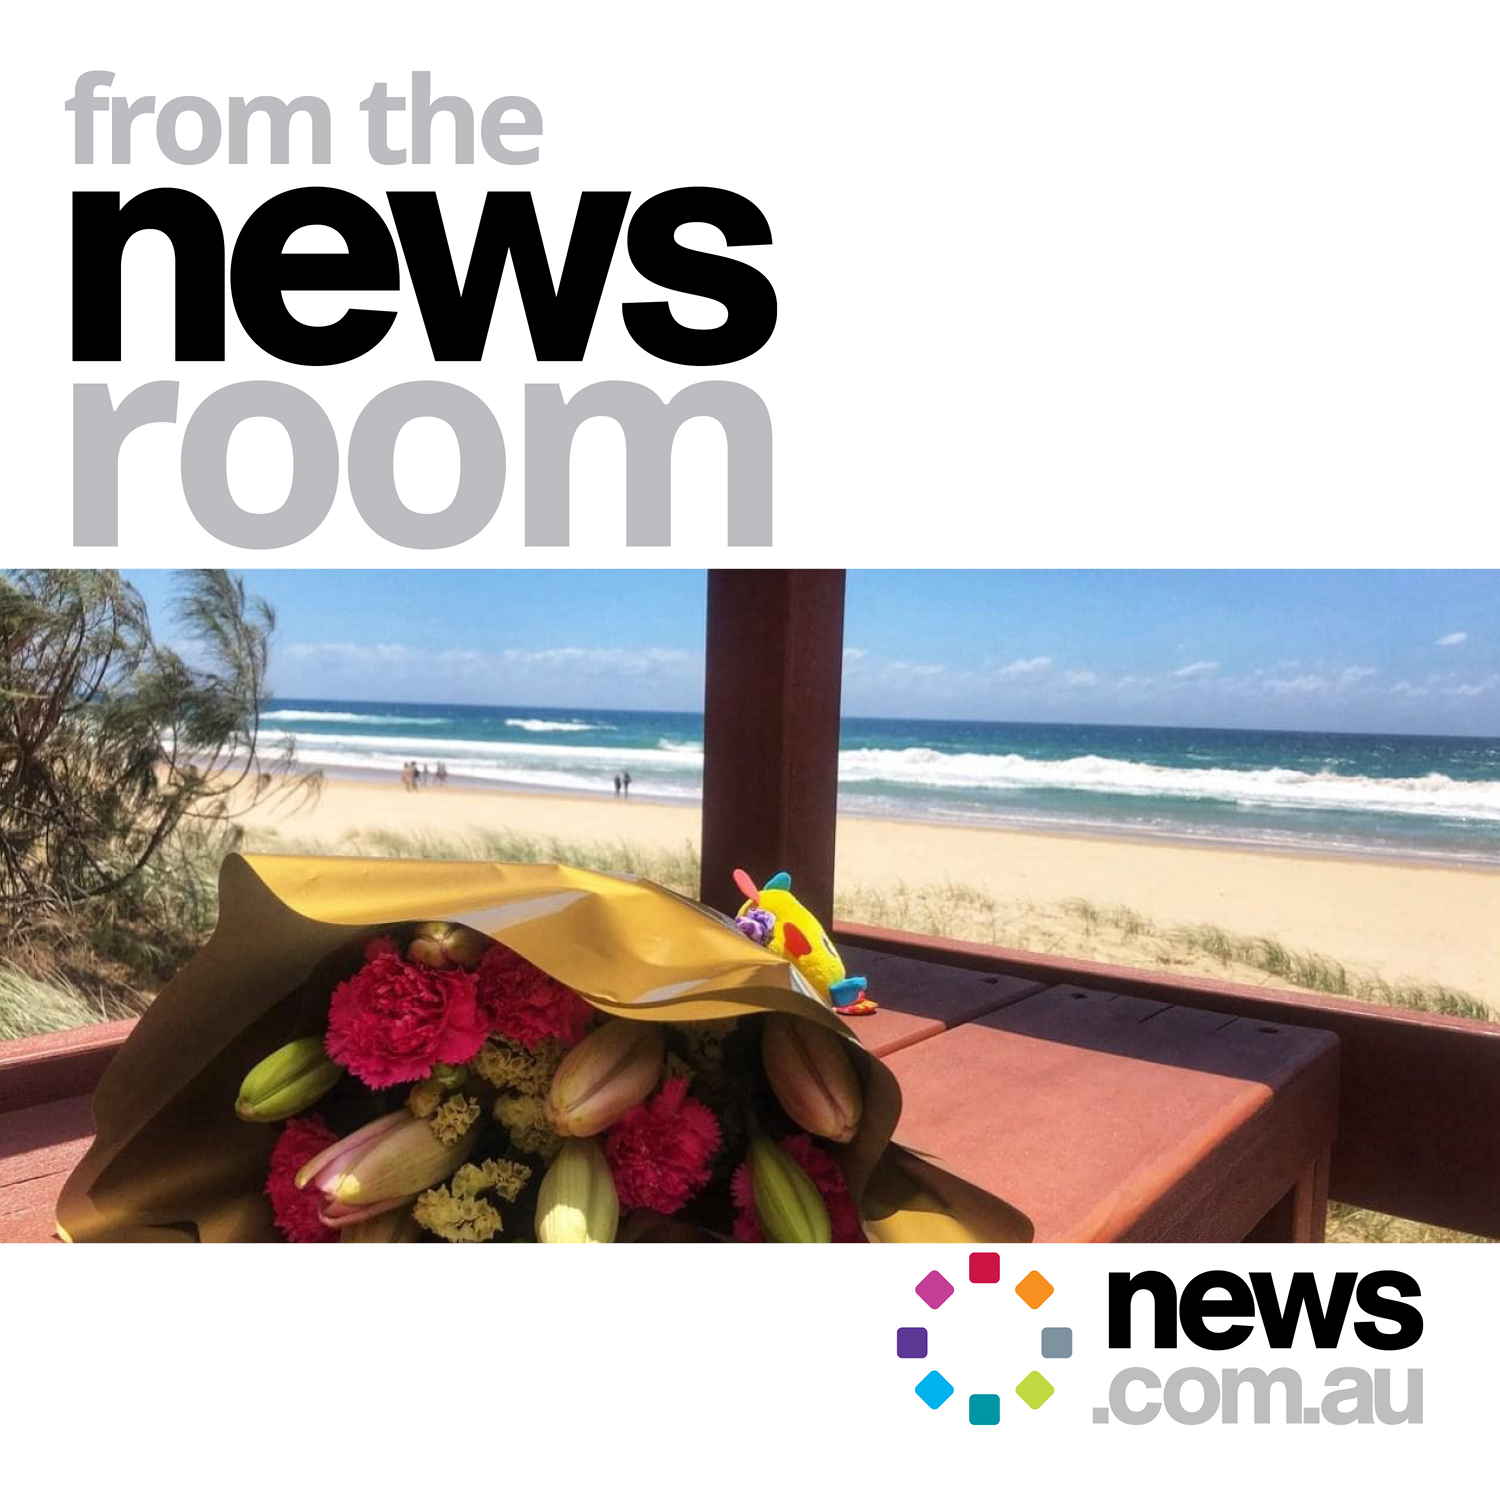 Tuesday November 20 - Details about baby found dead in Surfers Paradise, NRL superstar Jarryd Hayne hands himself into police, PM is under pressure over a throwaway line about Pamela Anderson, Bourke St terror attack victim to be mourned at state funeral